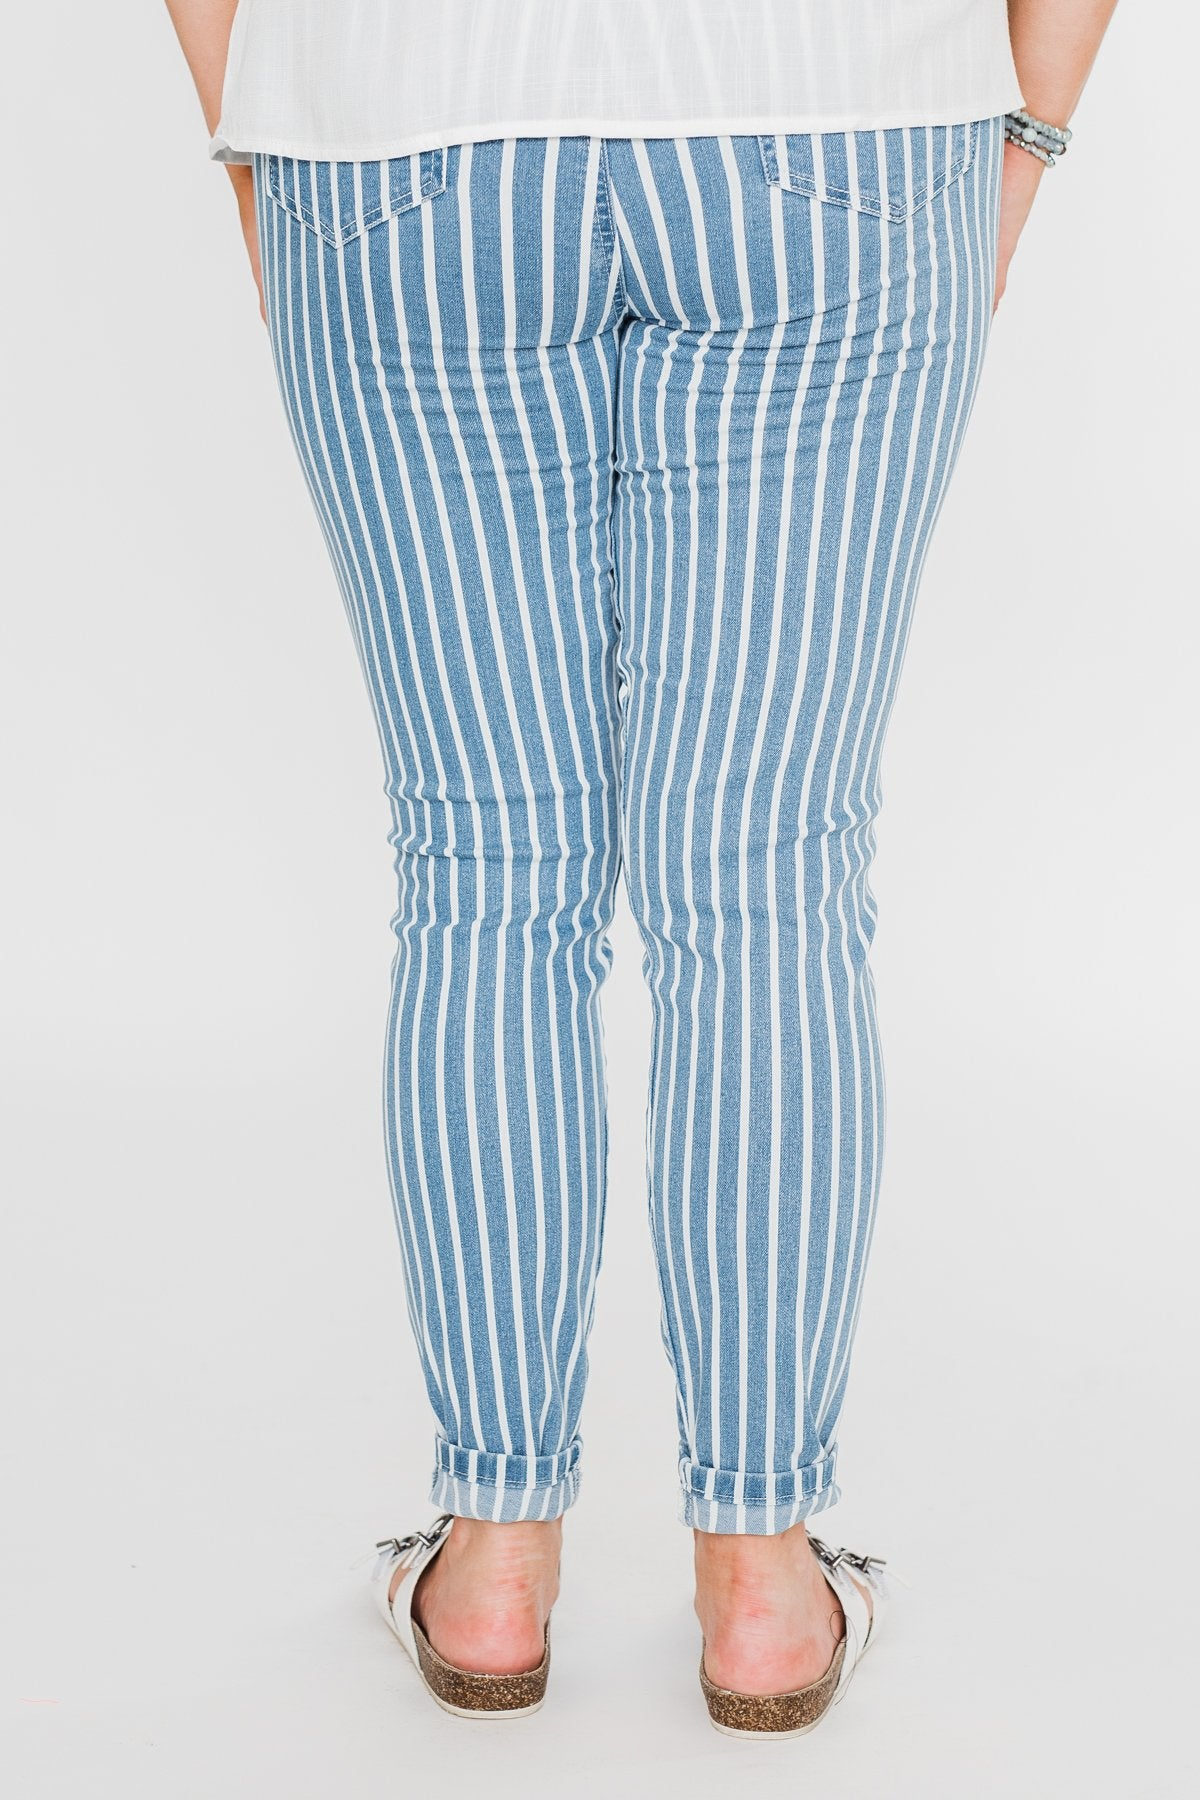 Celebrity Pink Striped Skinny Jeans- Medium Blue Wash